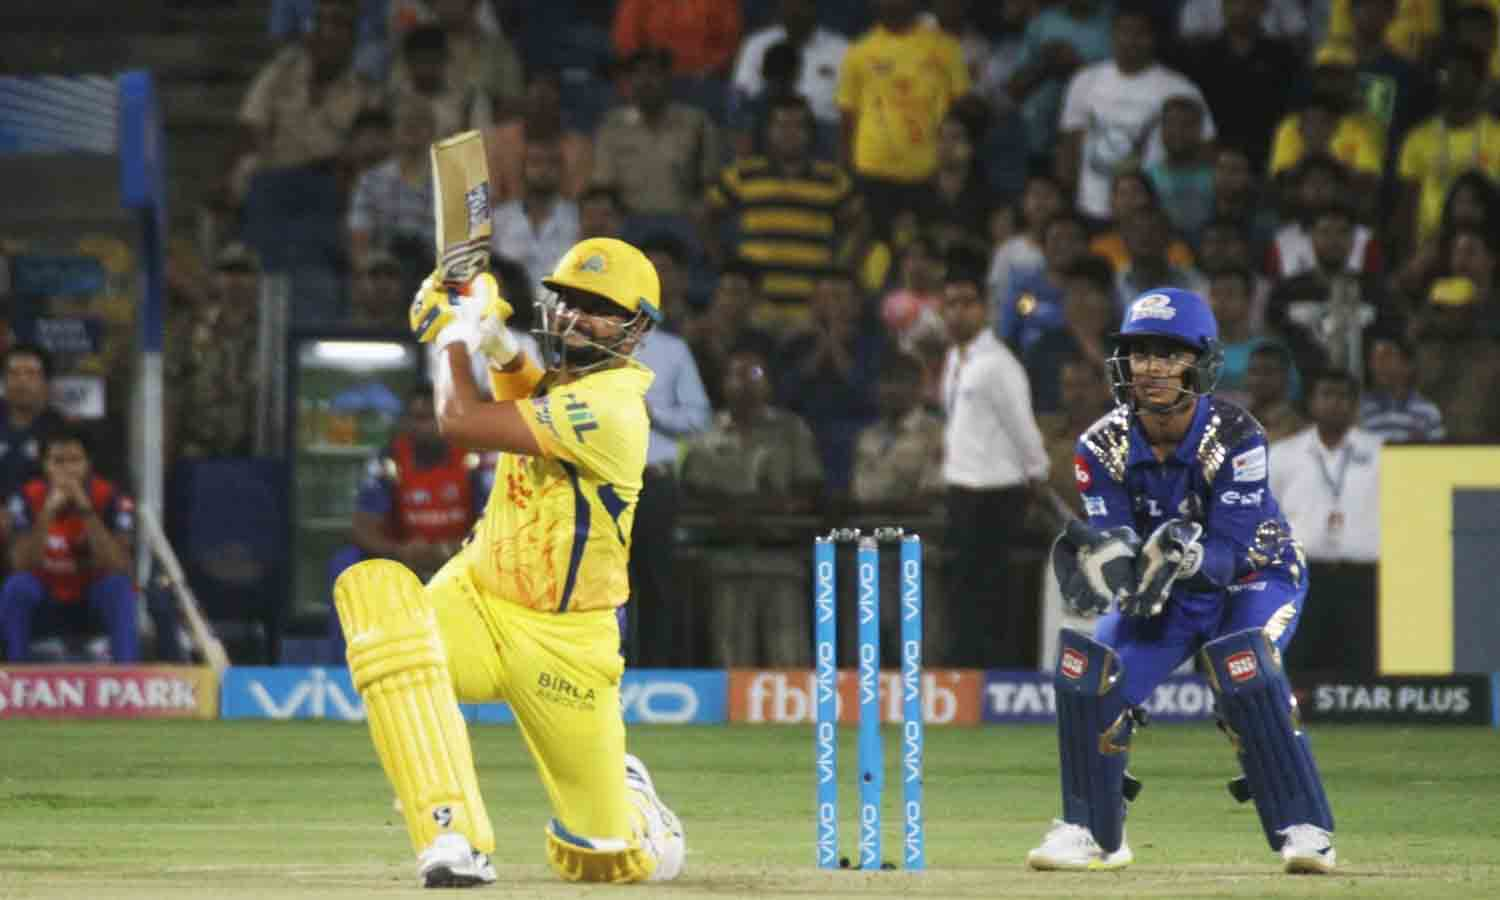 Chennai Super Kings Suresh Raina During An IPL 2018 Match Images